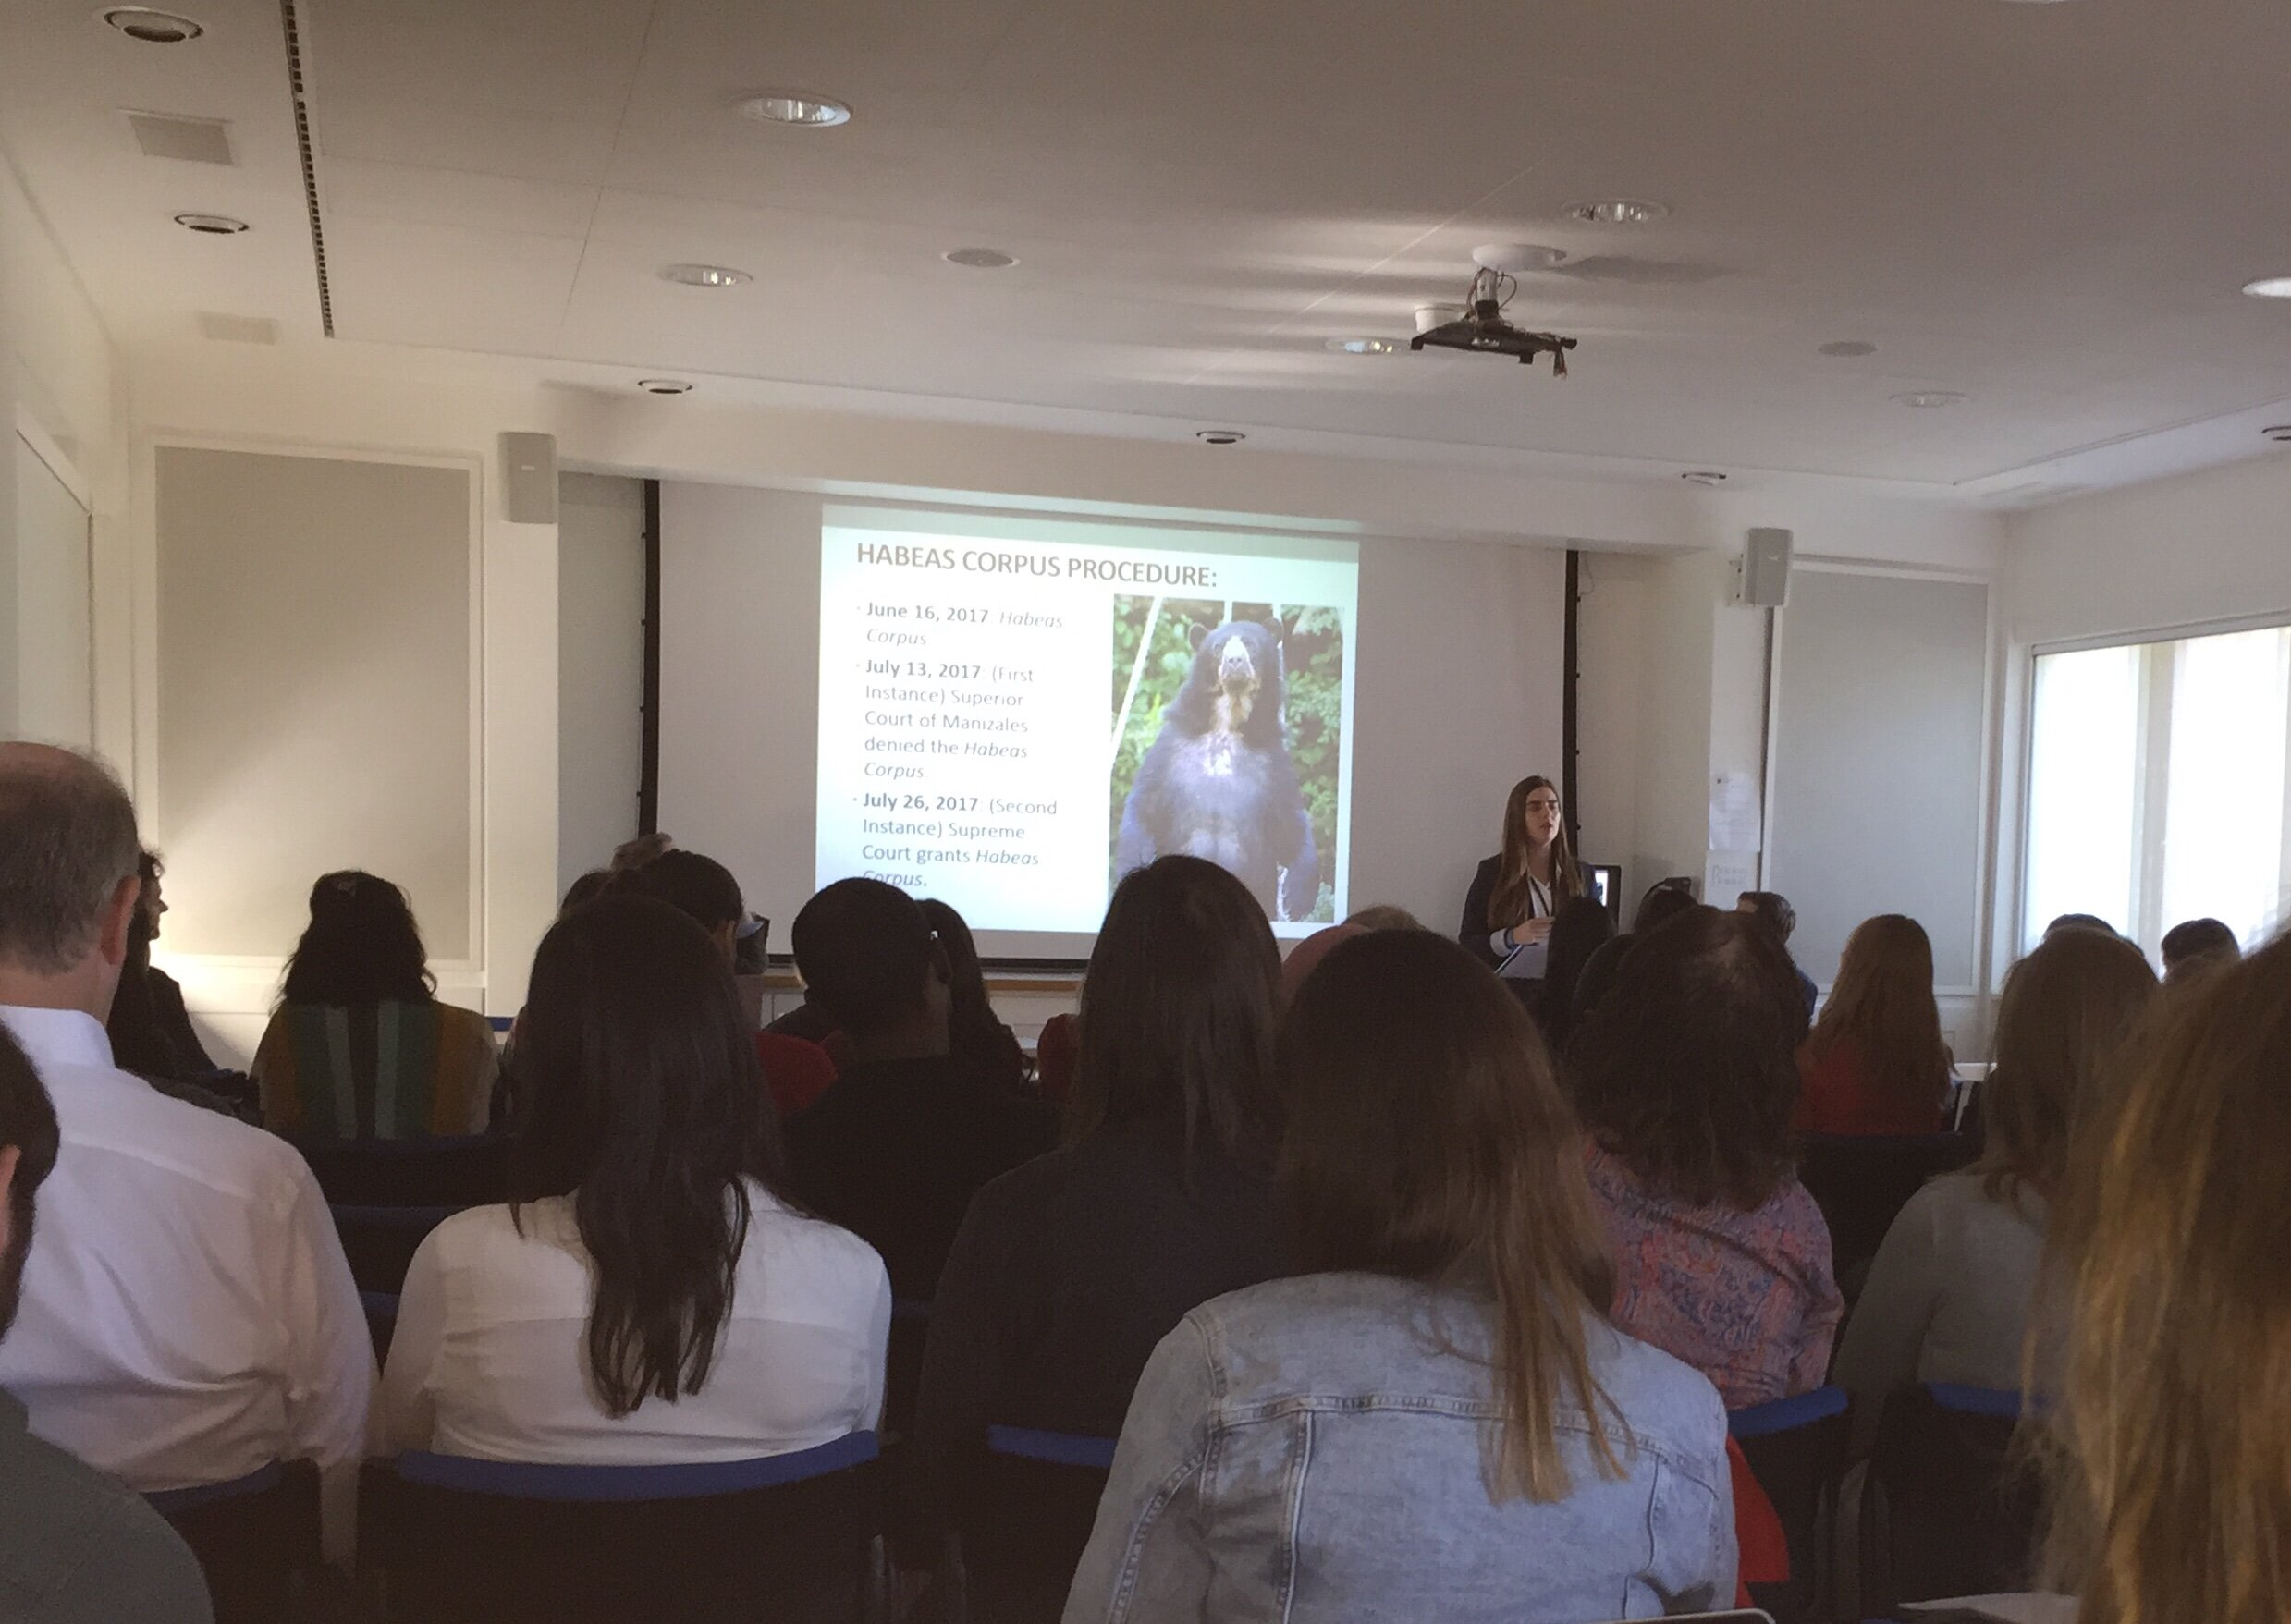 Macarena Montes presenting on the Chucho case